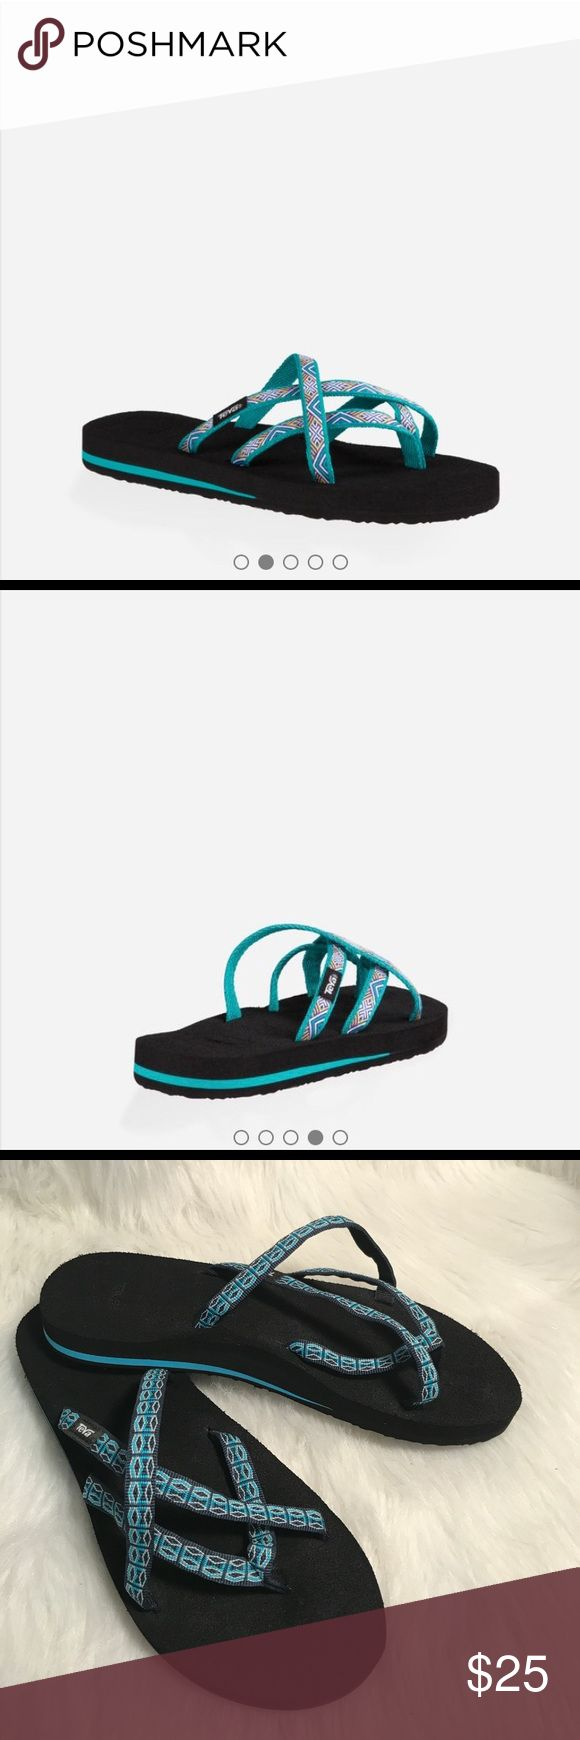 TEVA OLOWAHU WOMEN'S FLIP FLOPS Cute and comfy! Excellent pre-owned condition. The perfect staple to complete a cozy outfit! Color: Isla tropical teal/ Size: 9/ model #6840/ 017222299 Teva Shoes Sandals